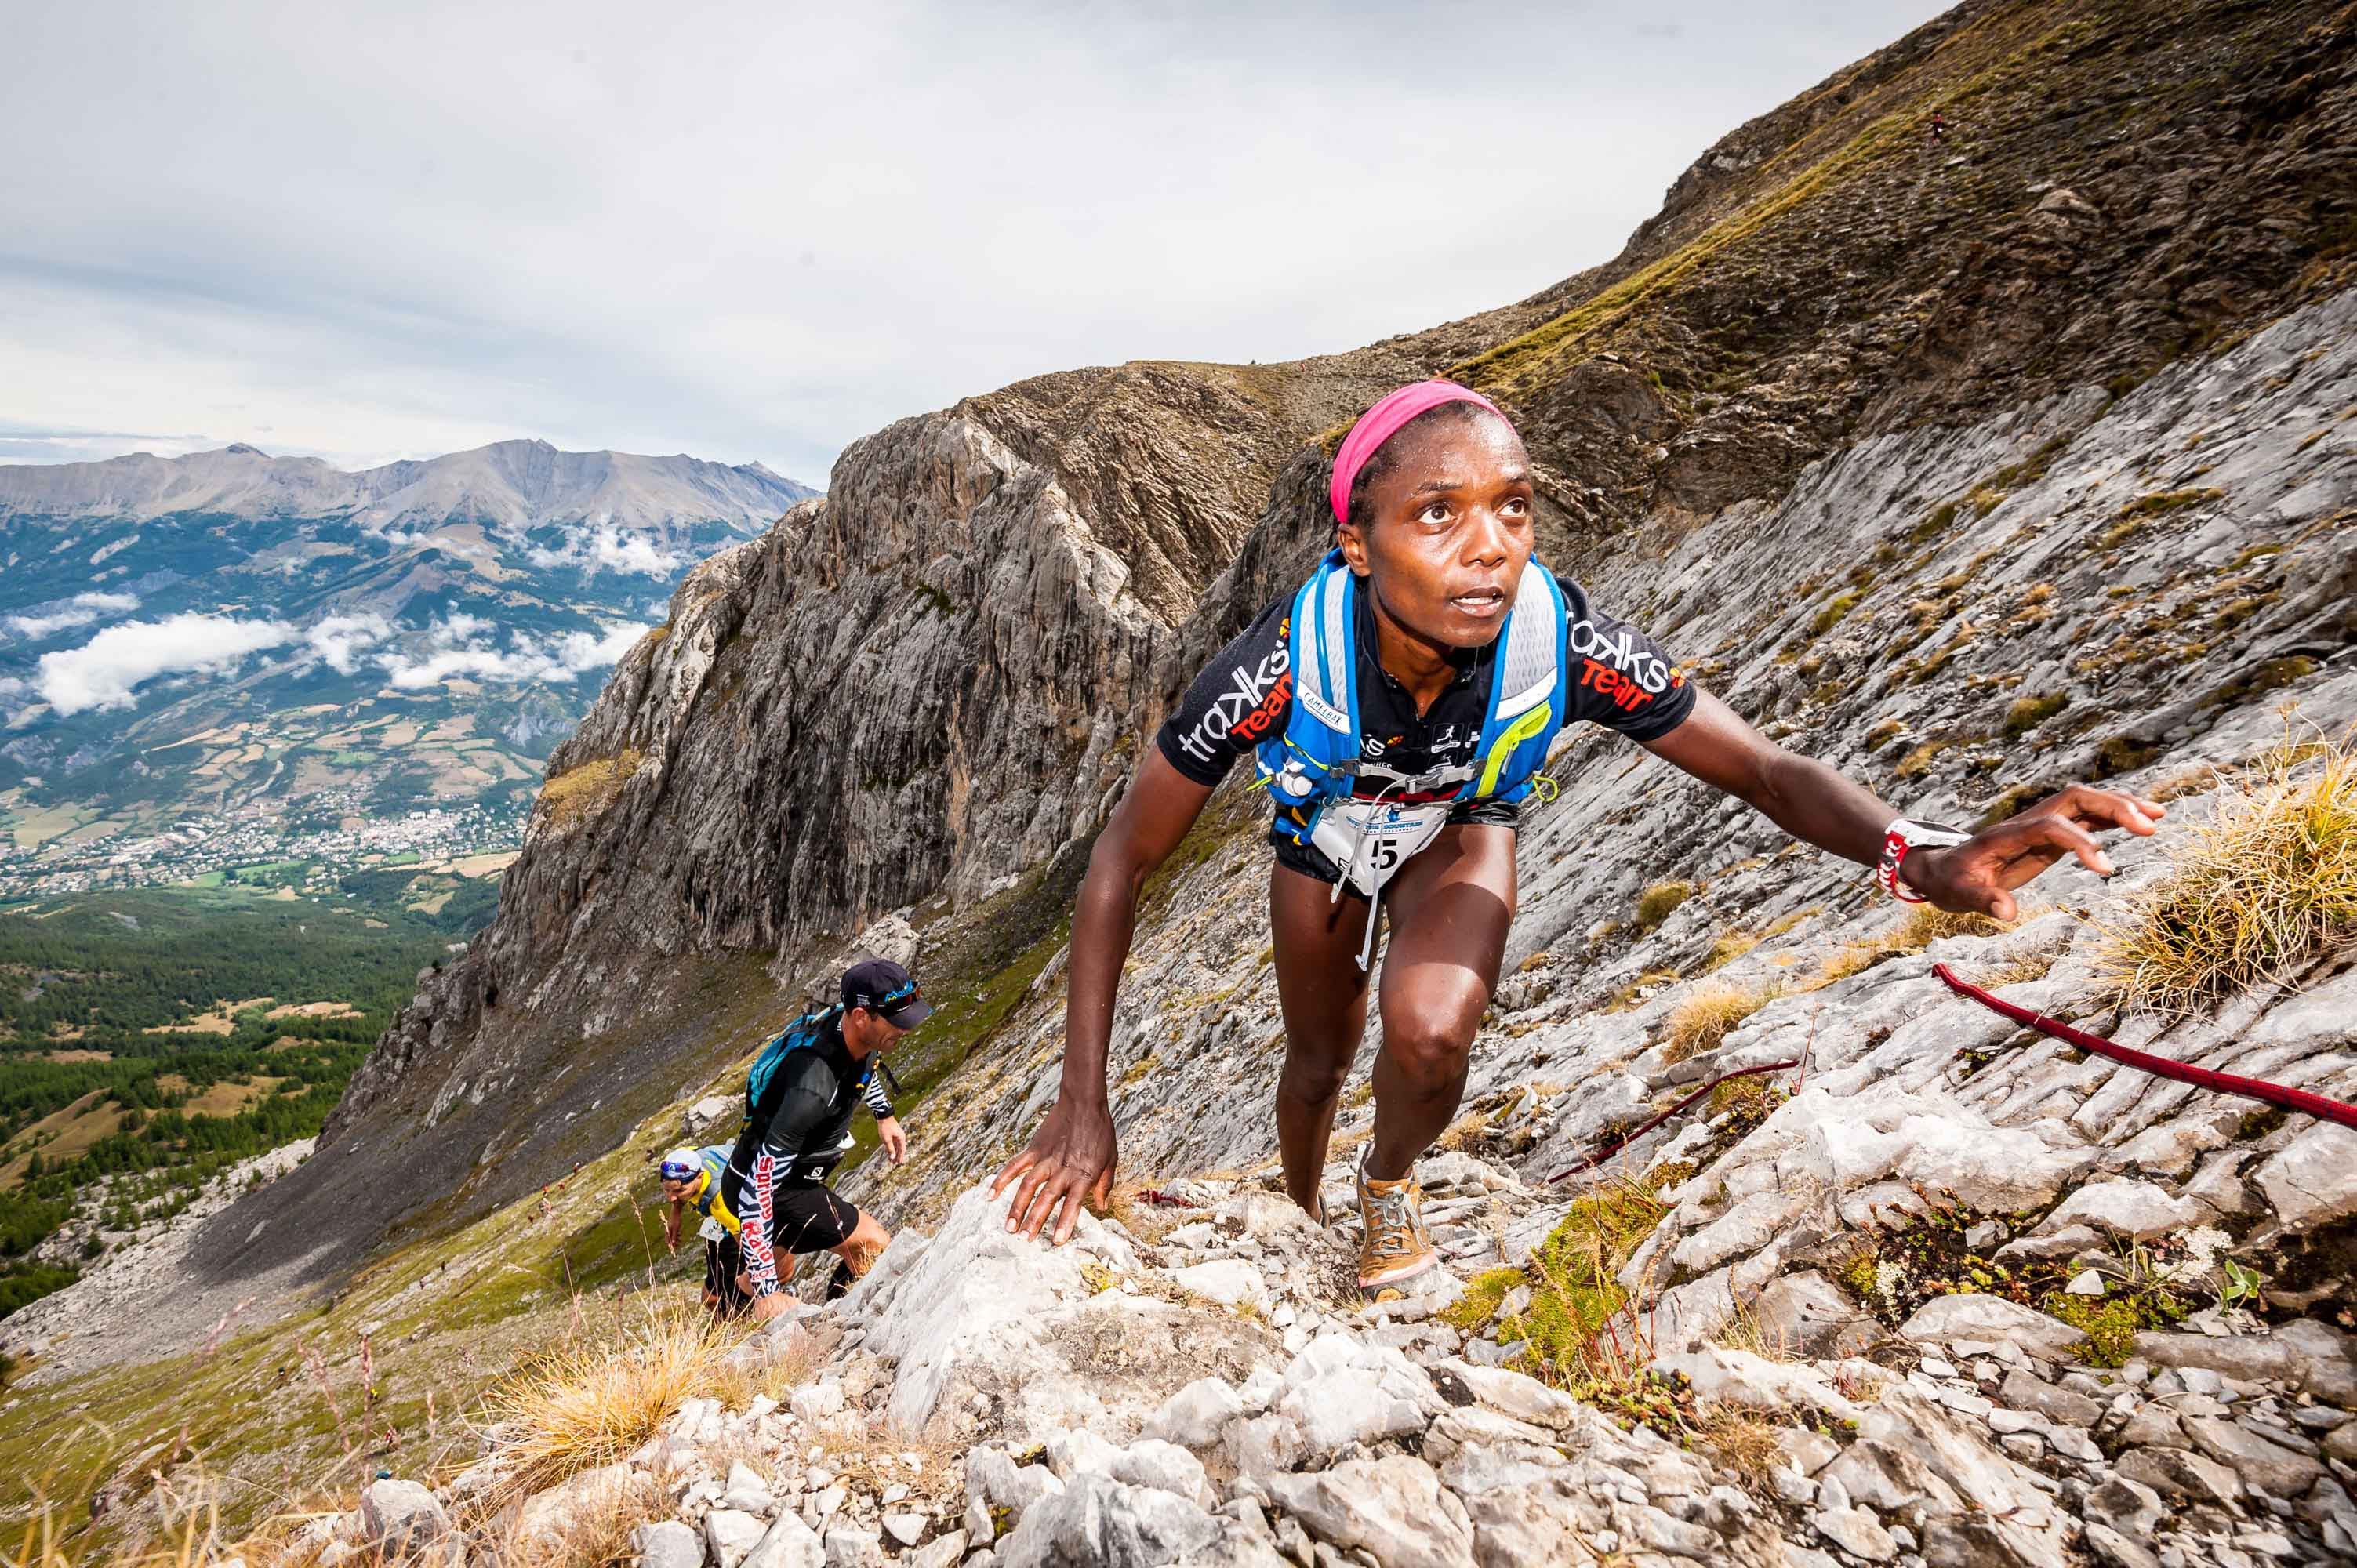 3 Juliet Champion 1ère Challenge Salomon photo Rémi Morel - Juliet Champion, Mathieu Martinez et Romain Wyndaele, vainqueurs du Salomon Over the Mountain Running Challenge 2017